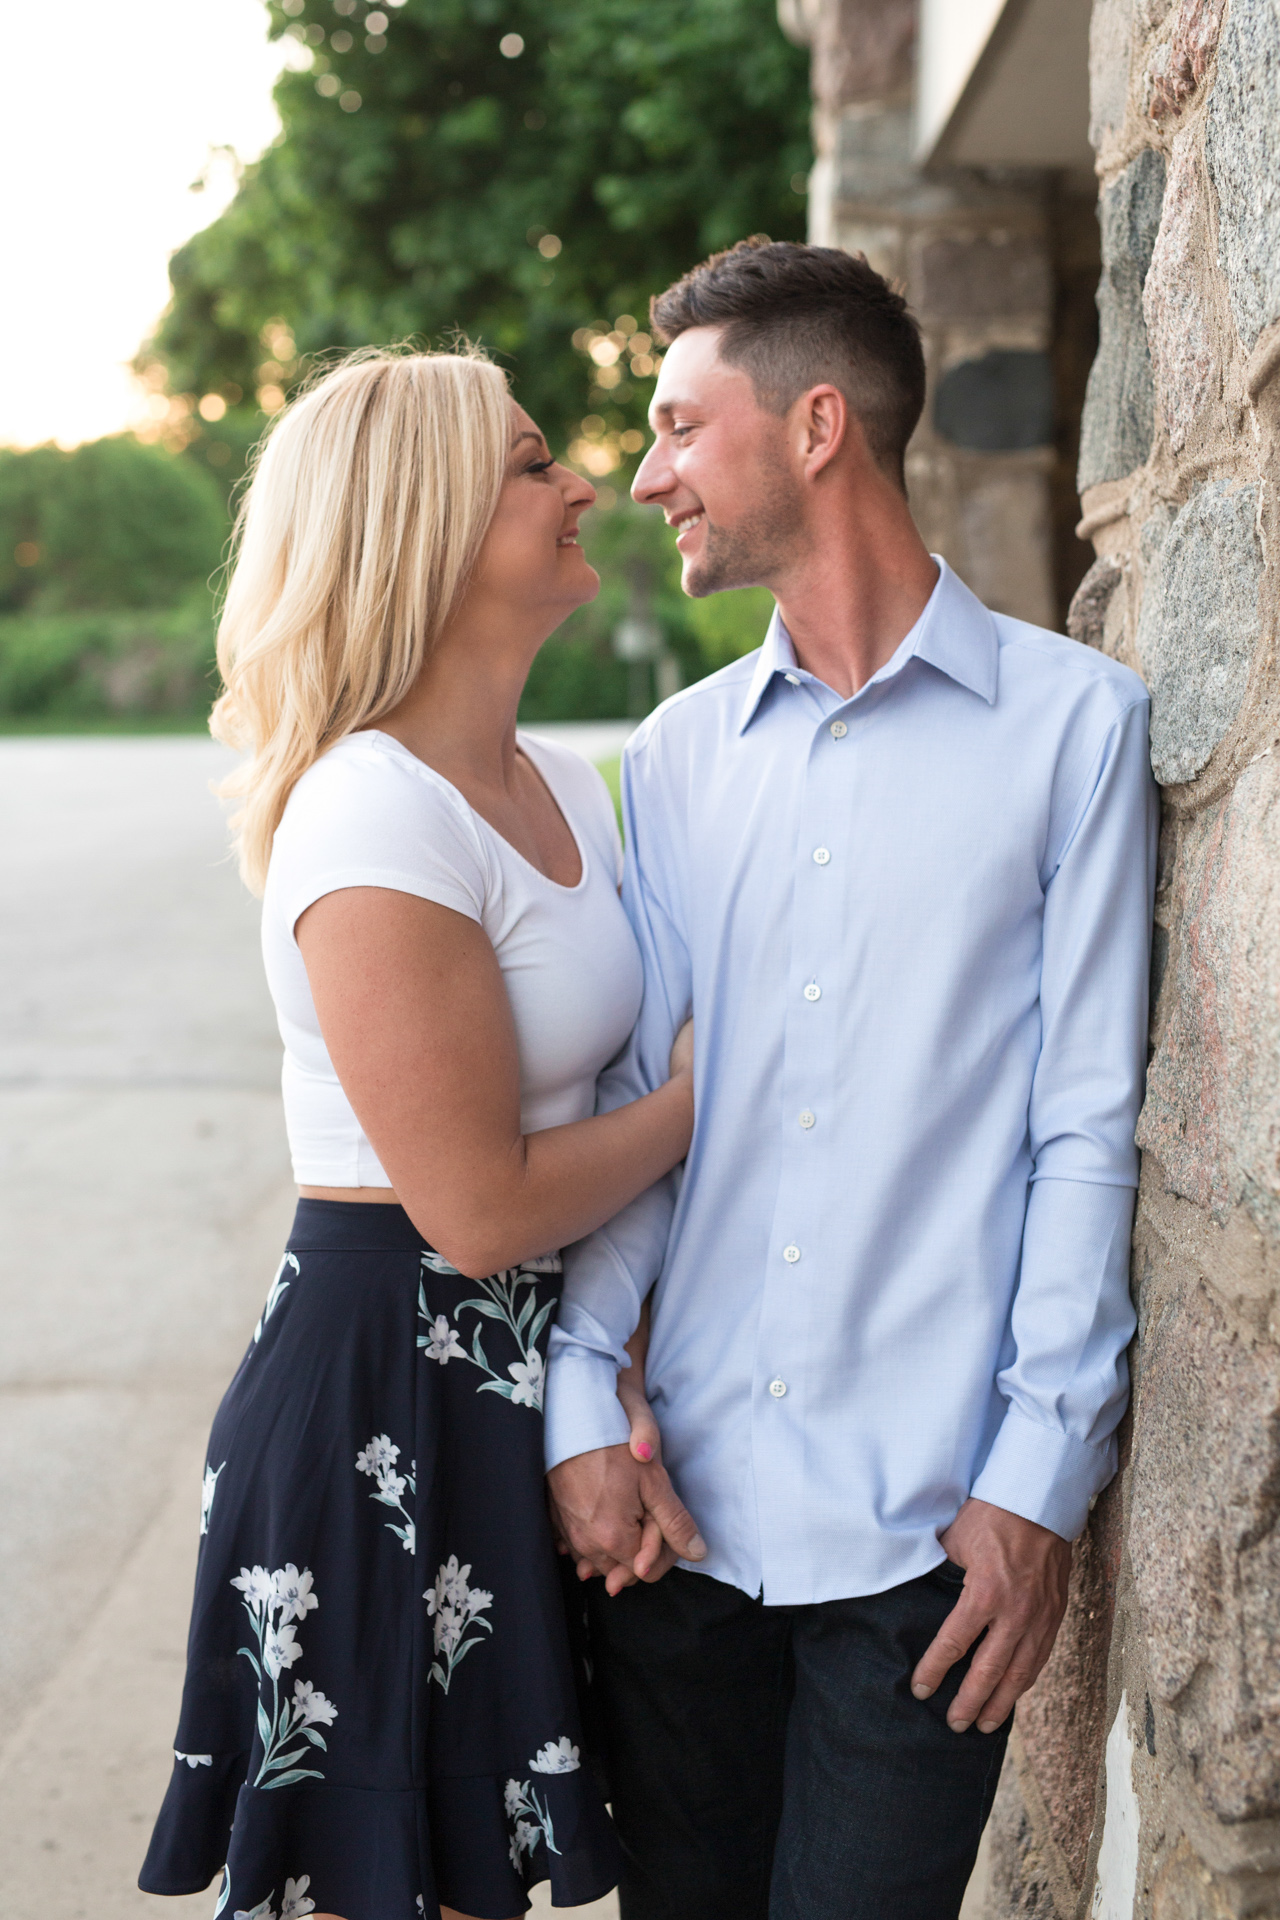 The Faits Peoria Bloomington Normal Central Illinois Unique Wedding Photographers Photographer Engagement Photography Uptown Normal Engagement Volleyball engagement-25.jpg